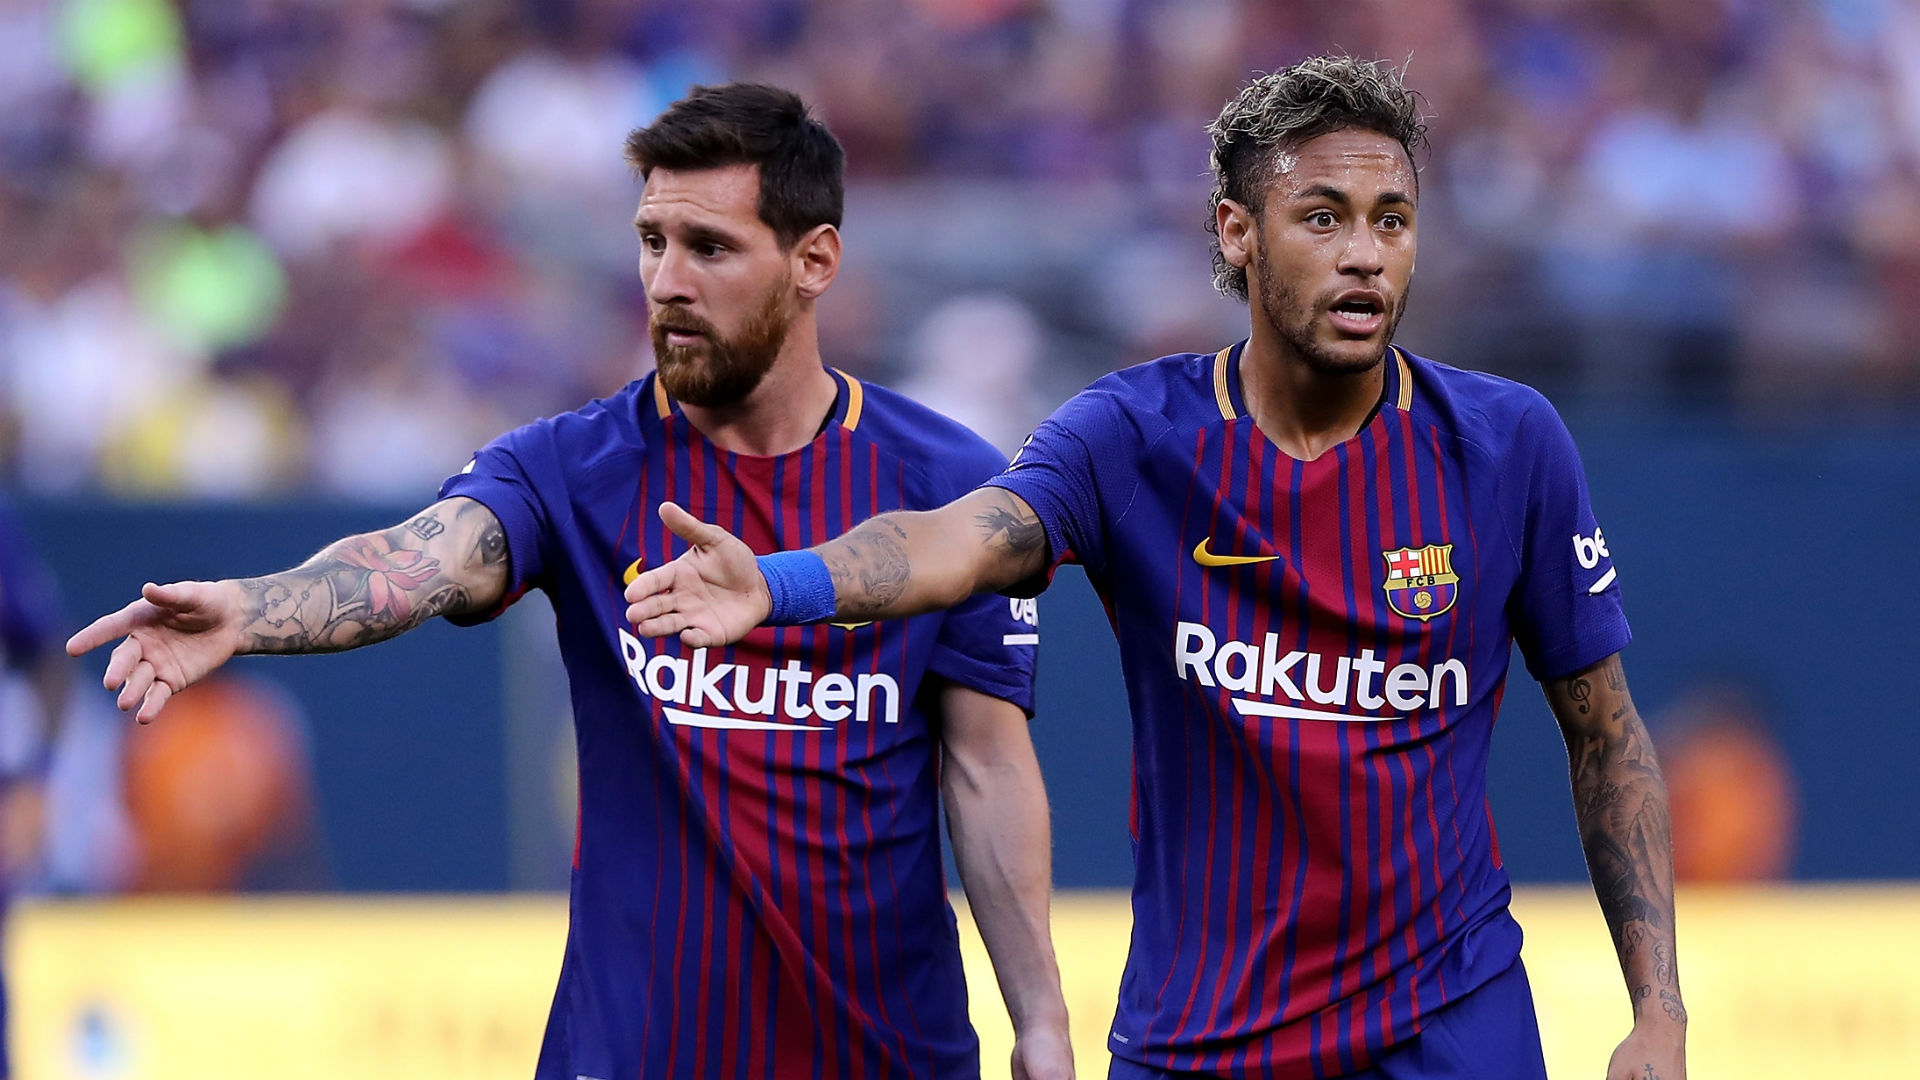 Lionel Messi: FC Barcelona talisman admits fears of Neymar transfer to